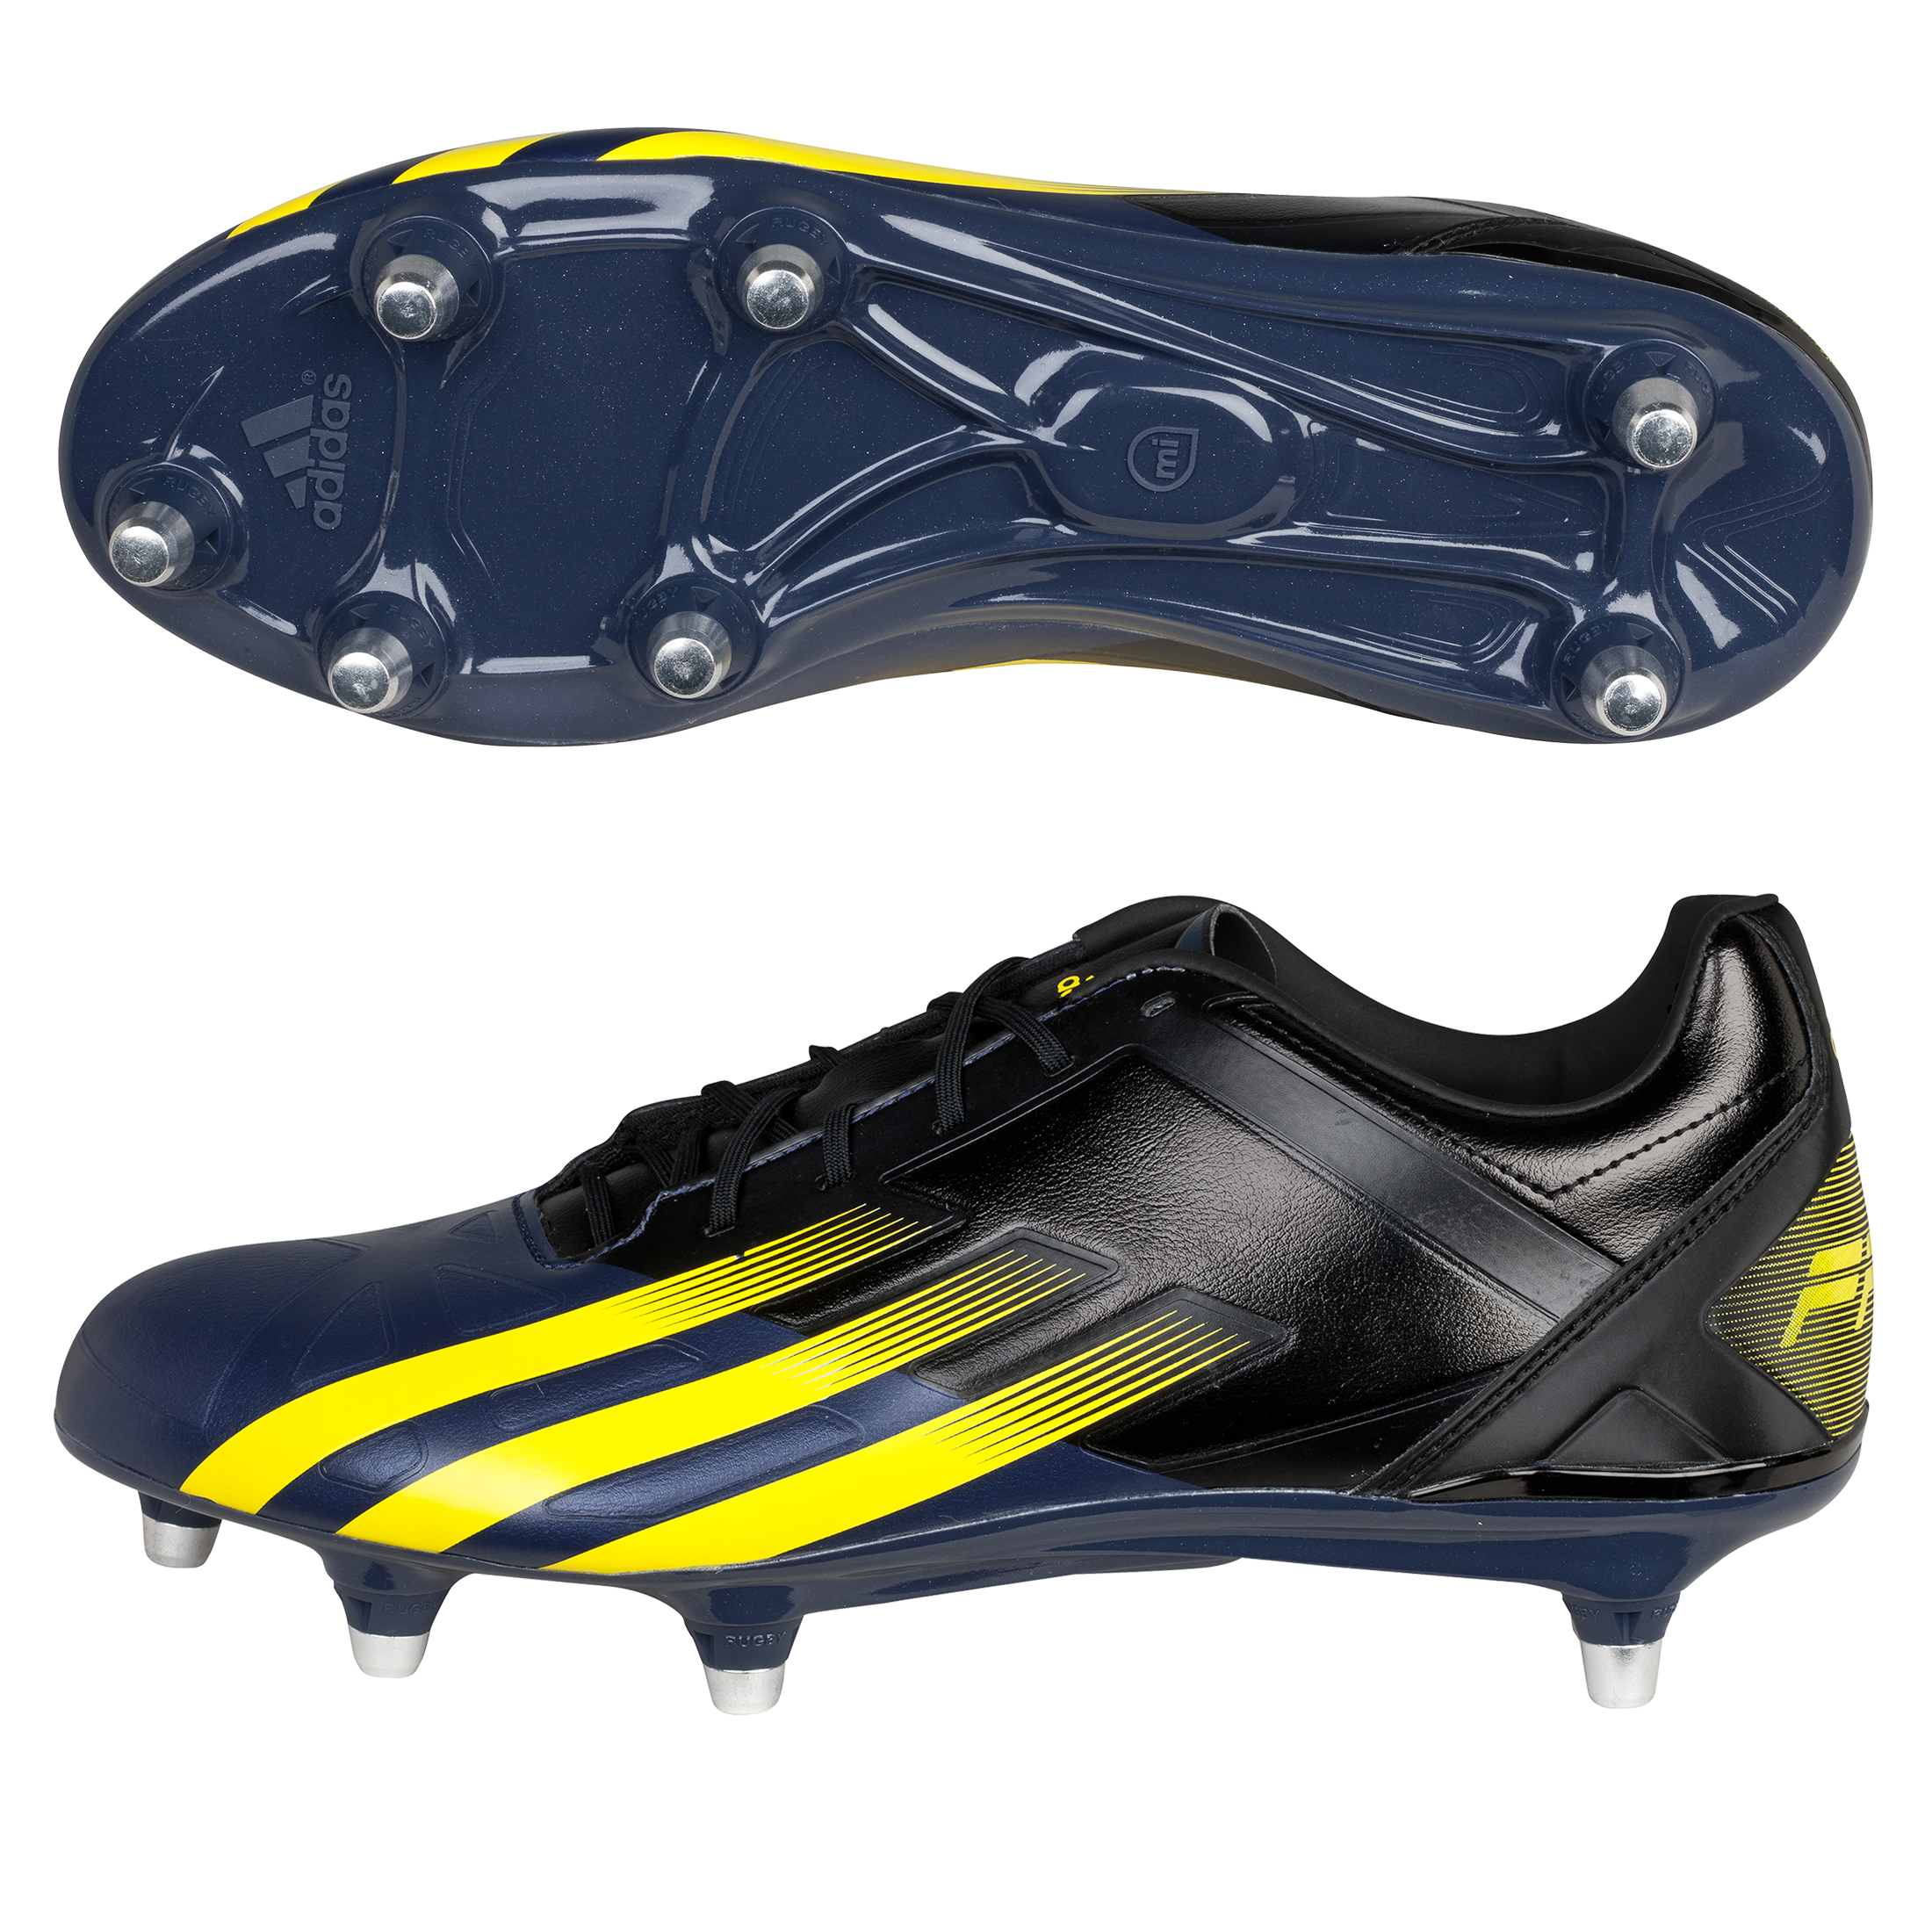 Adidas FF80 Pro XTRX Soft Ground Rugby Boots - Black/Vivid Yellow/Urban Sky